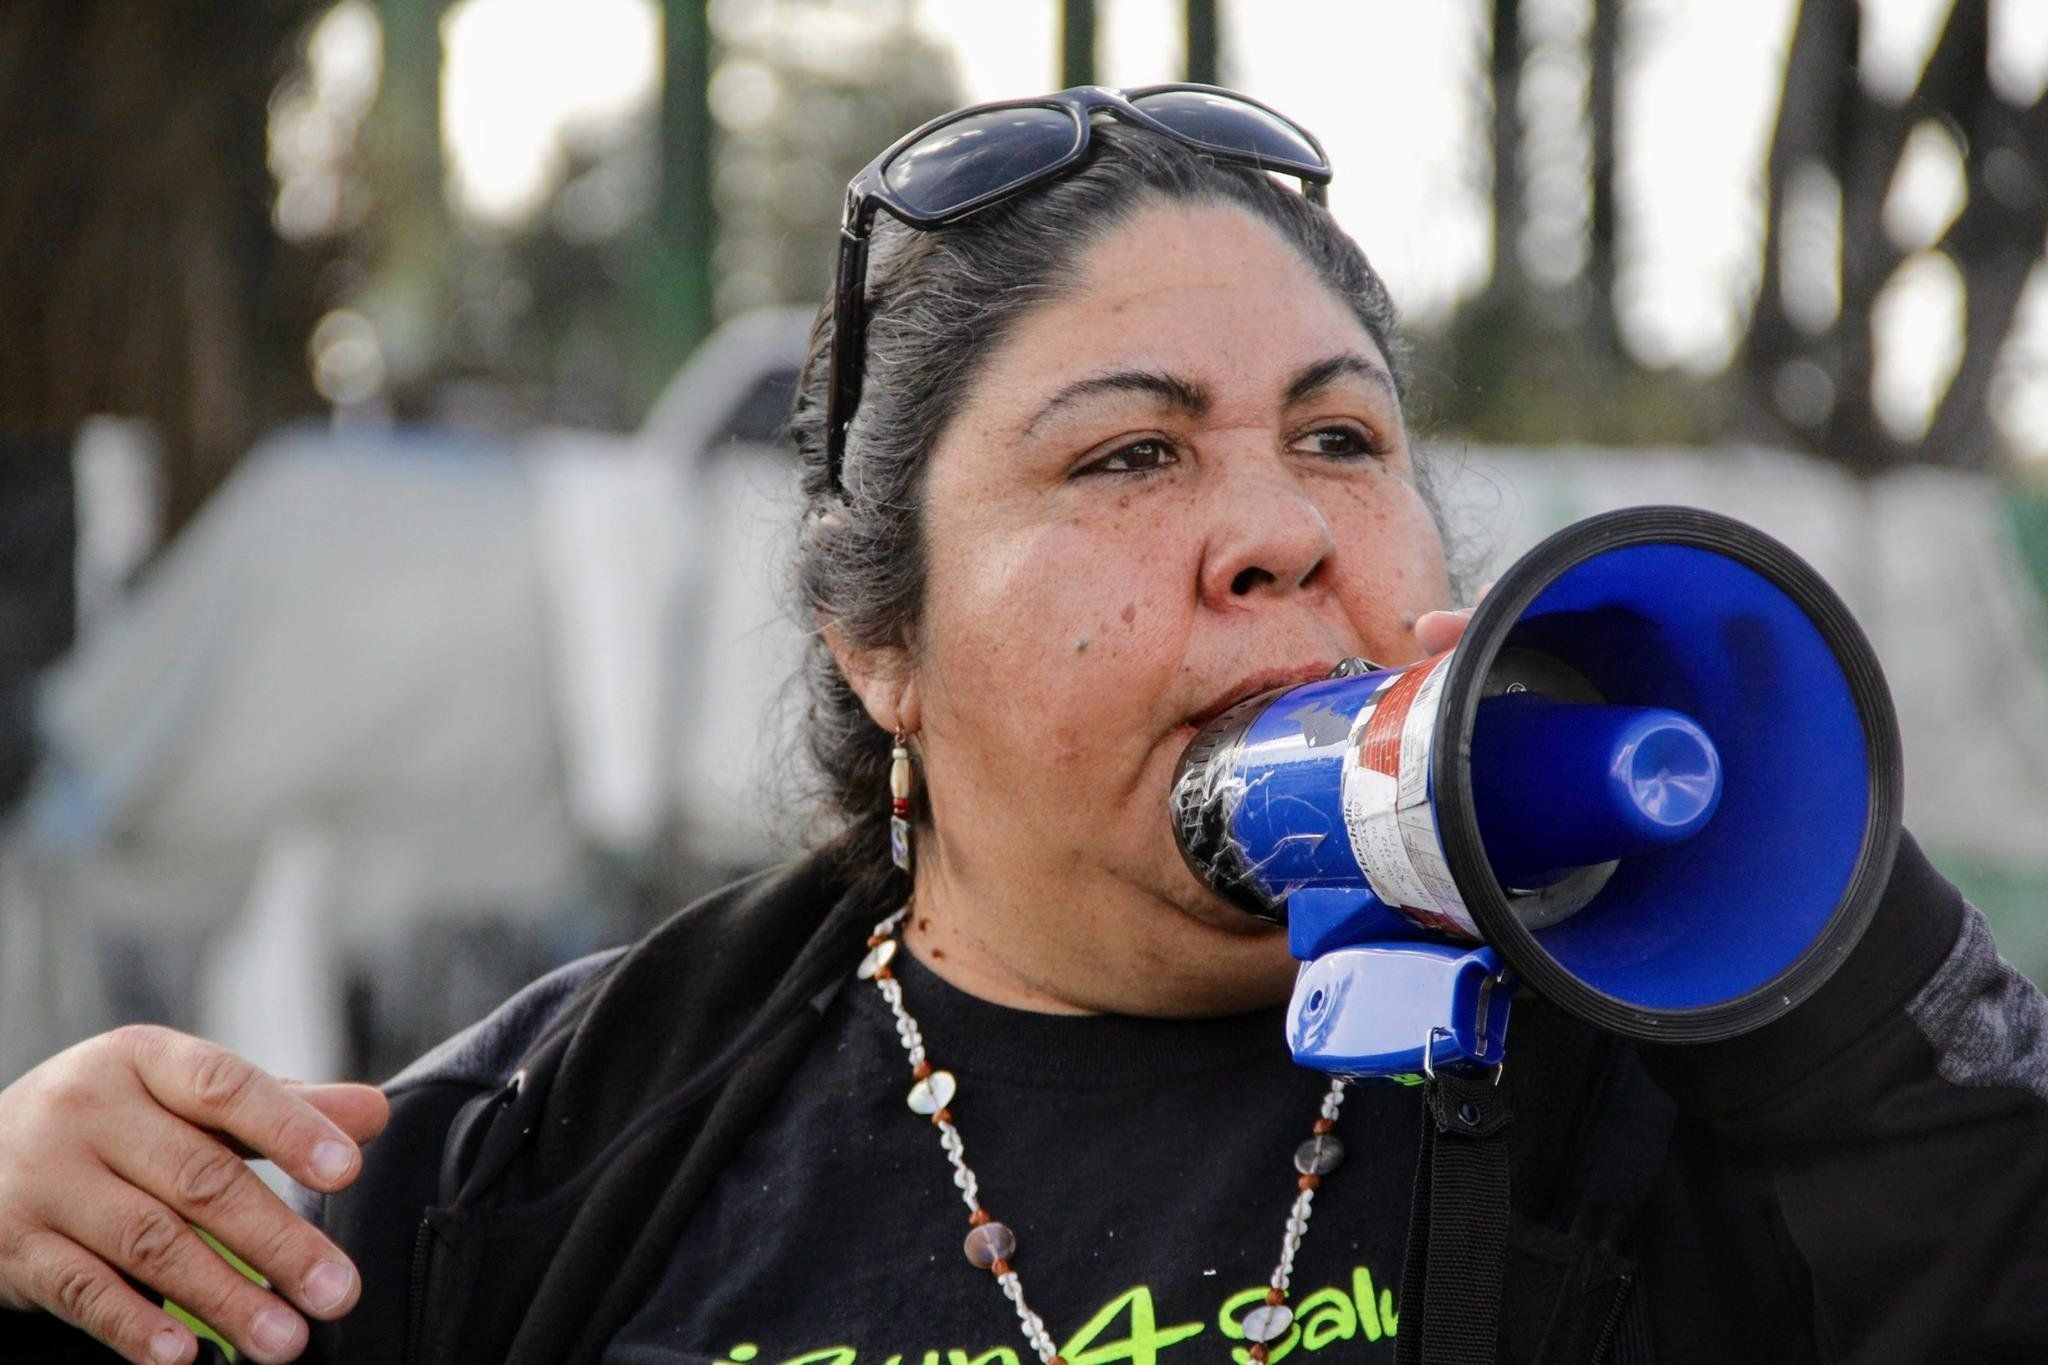 Corrina Gould co-founded the Sogorea Te Land Trust to reclaim Ohlone land in the San Francisco Bay Area.